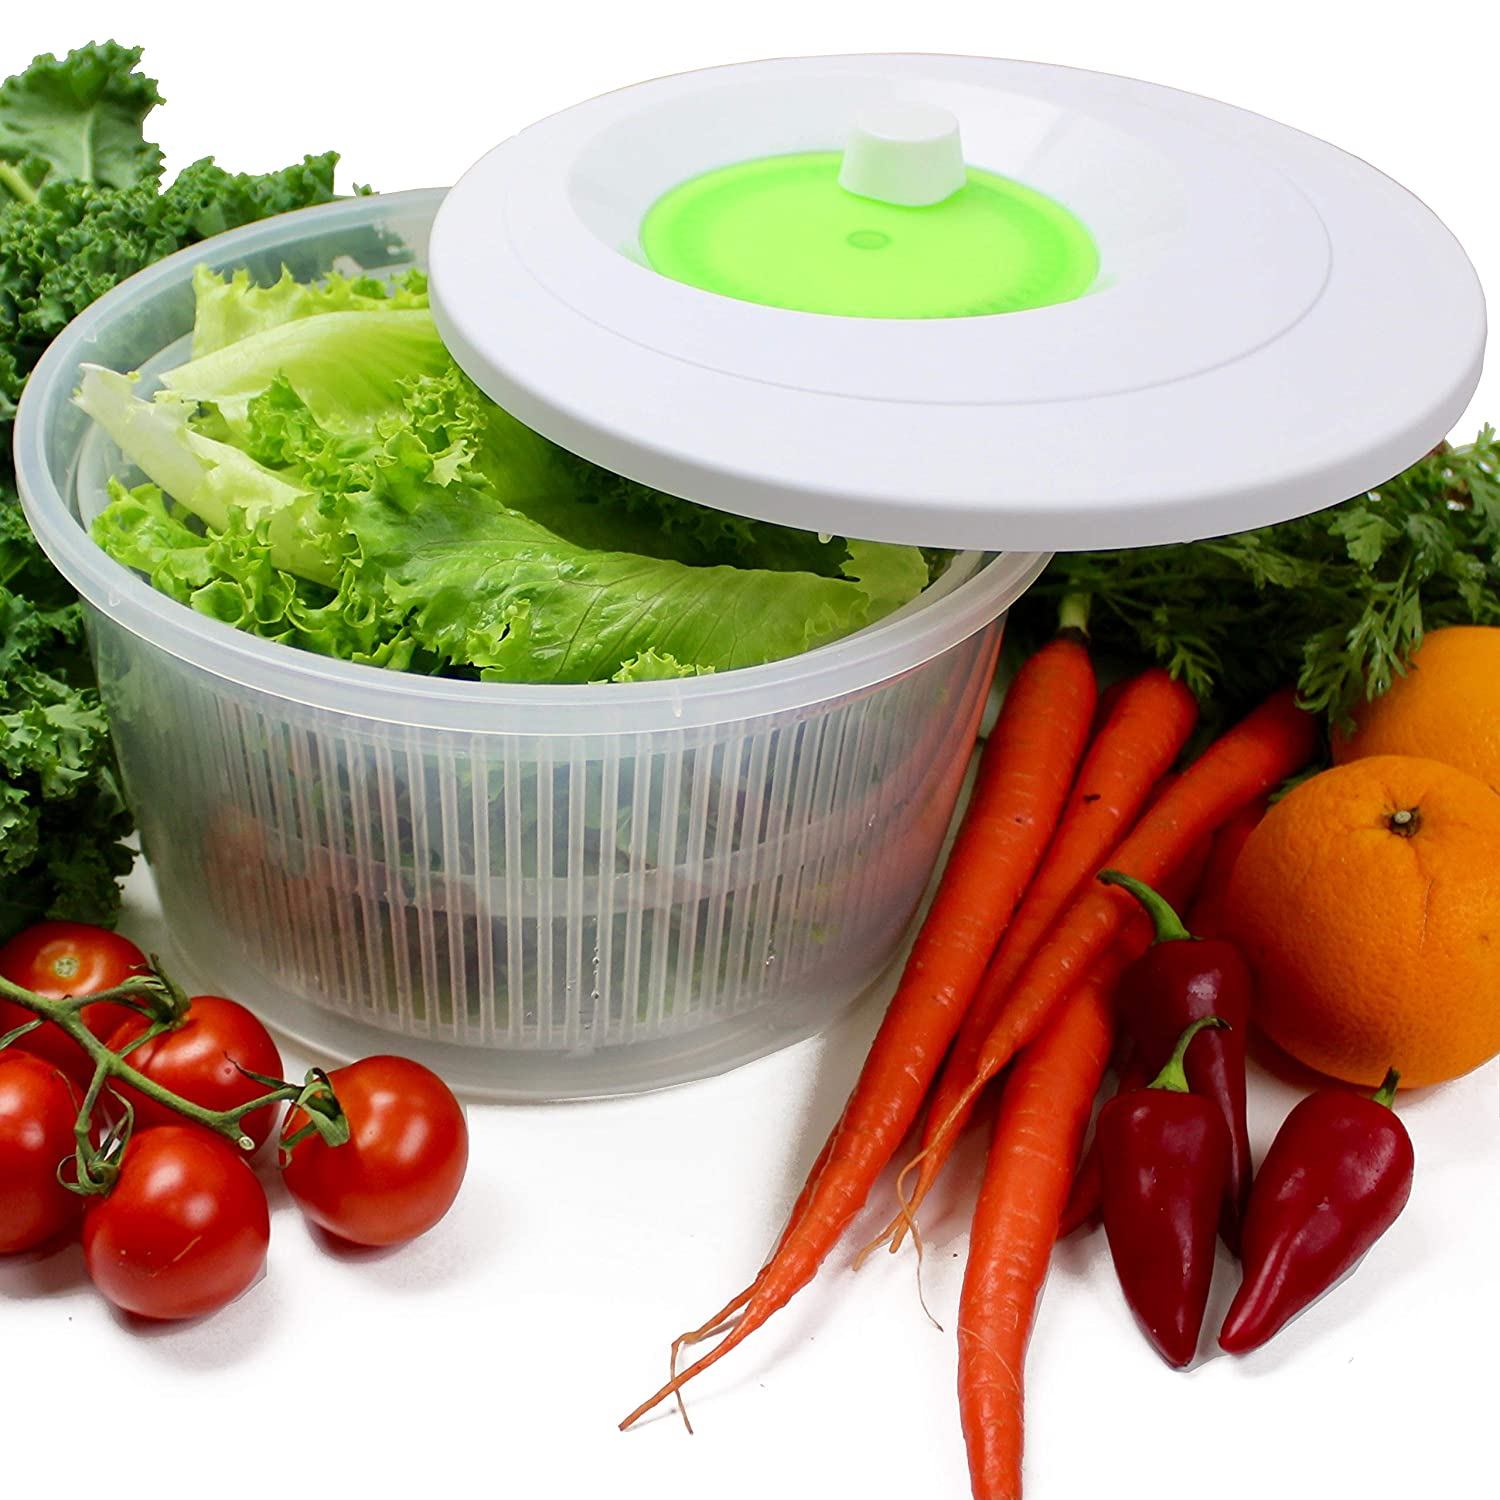 K Basix Large Salad Spinner 4.5 L – Vegetable or Lettuce Dryer, Keeper, Crisper and Shaker, Compact Rotary Handle is Easy to Spin and allows Easy Storage